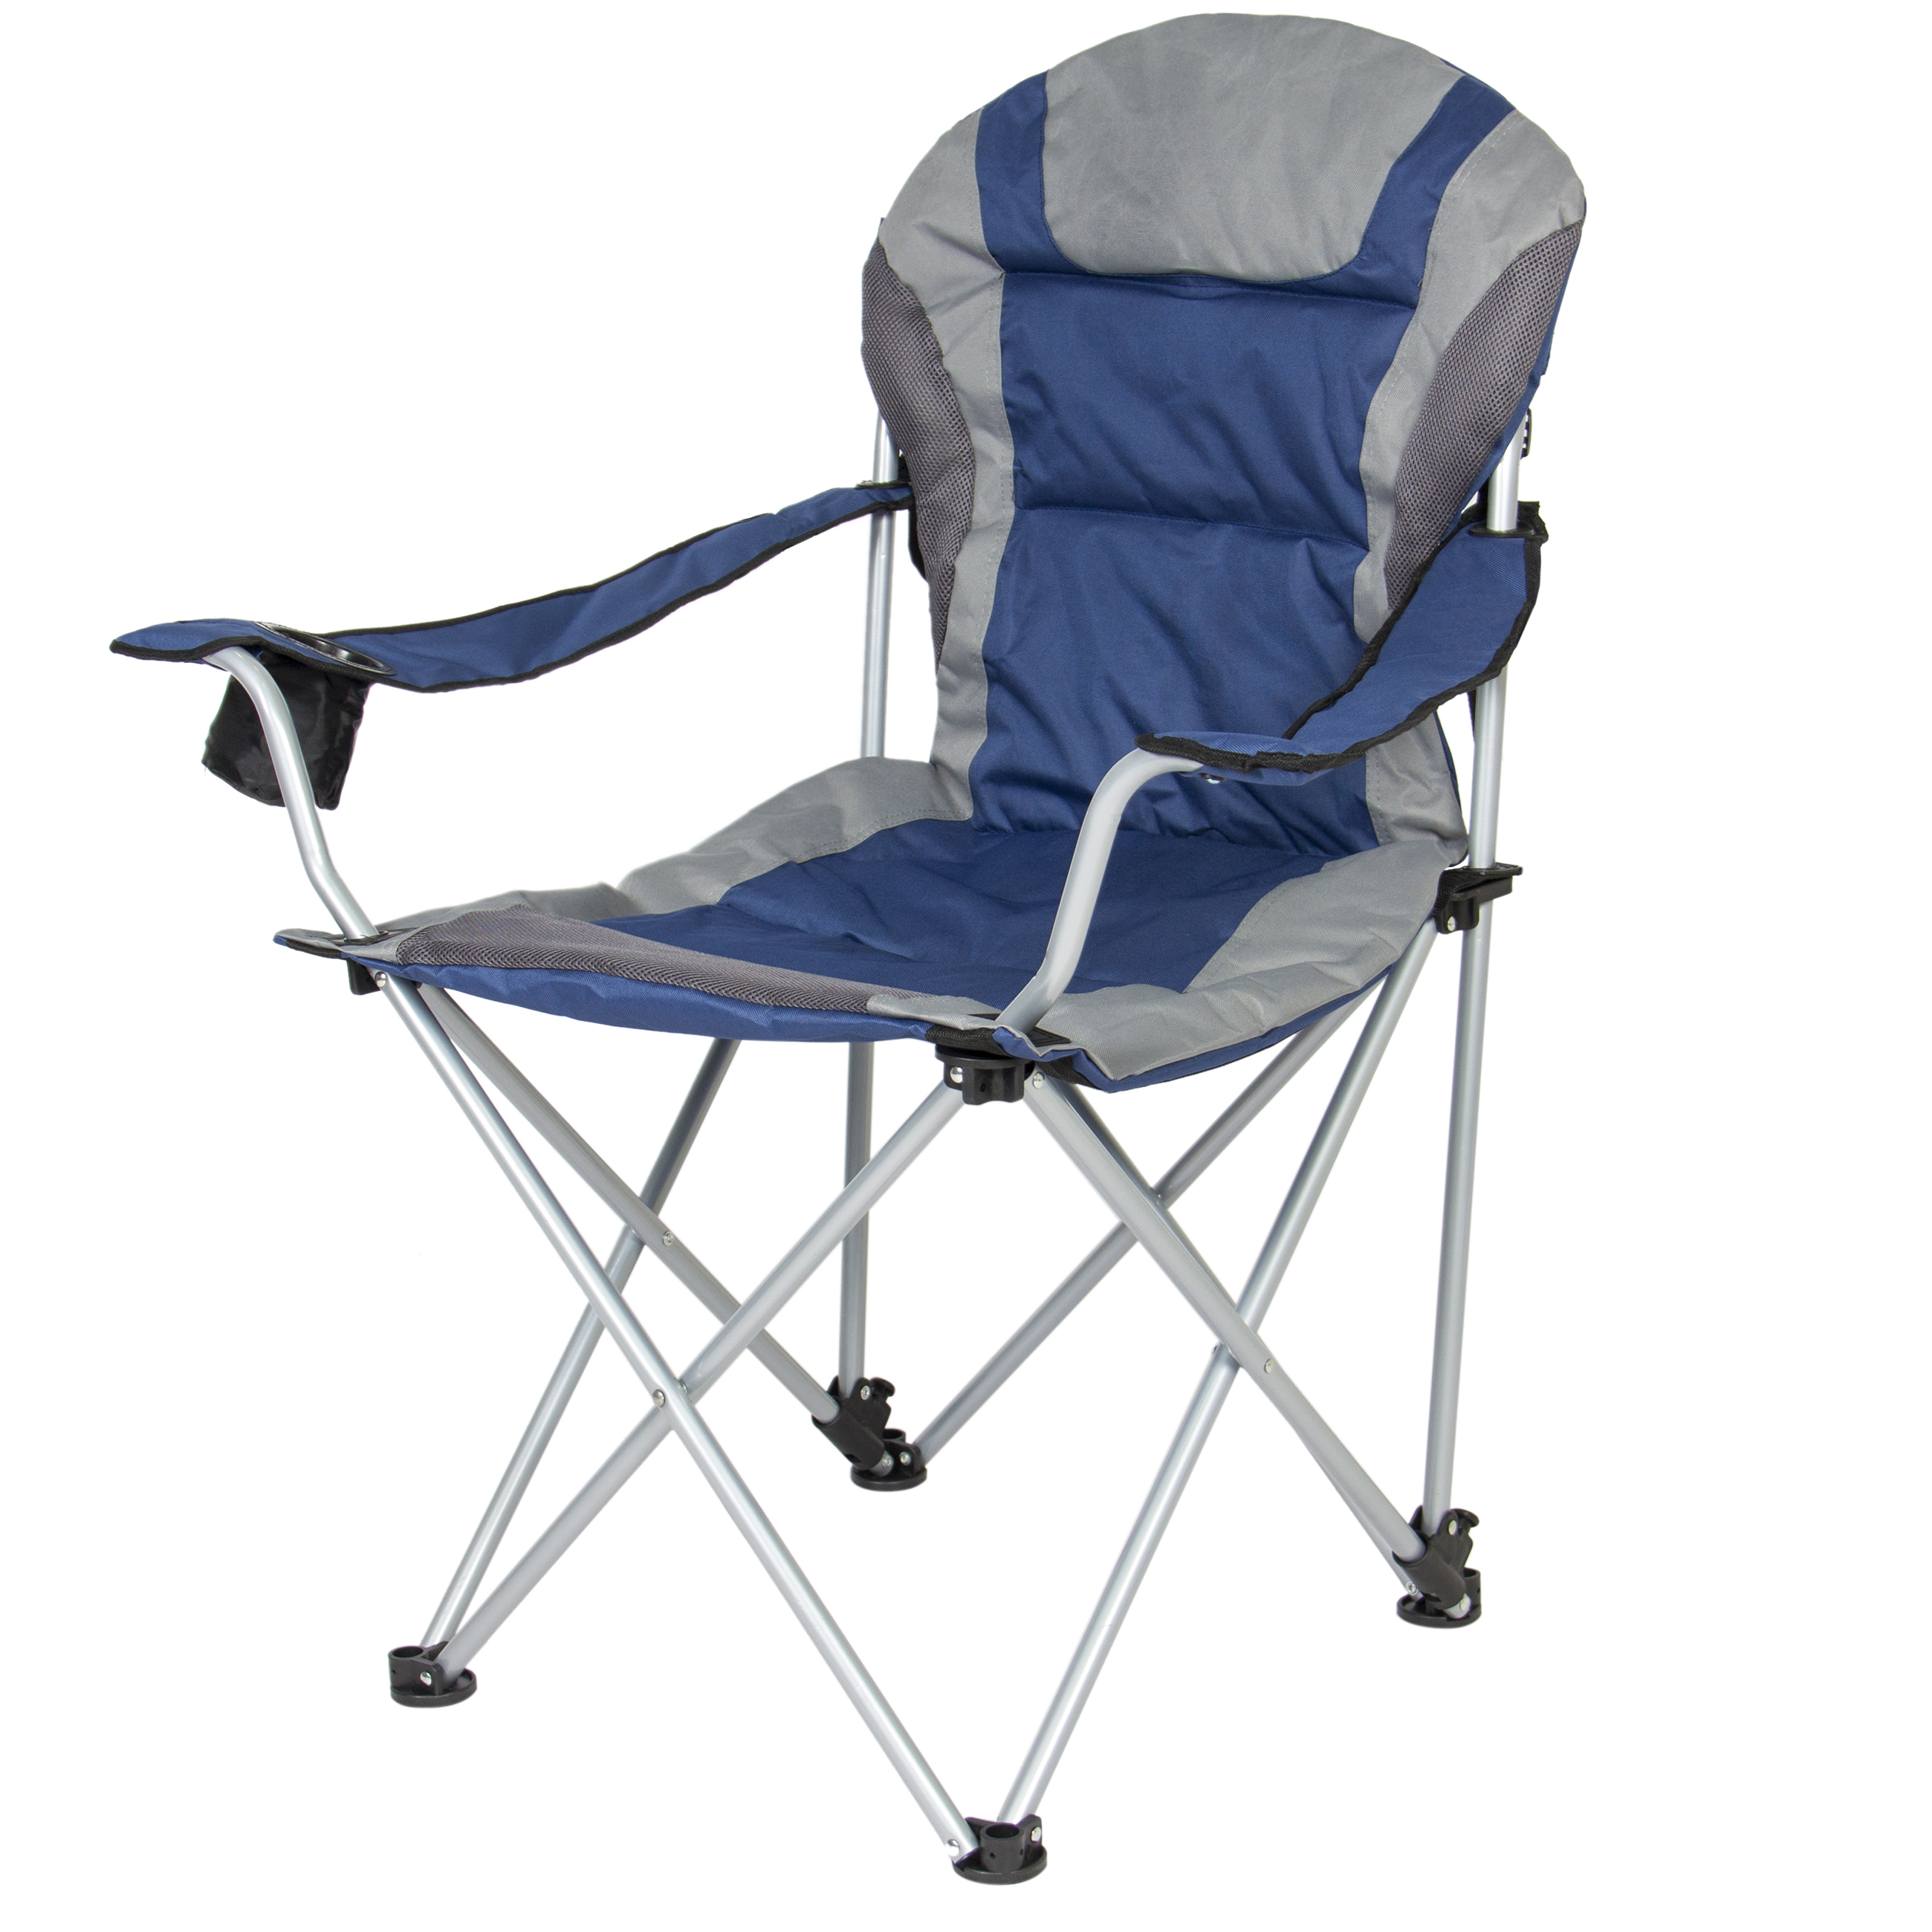 portable beach chair best toddler table and set uk choice products deluxe padded reclining camping fishing w carrying case blue walmart com